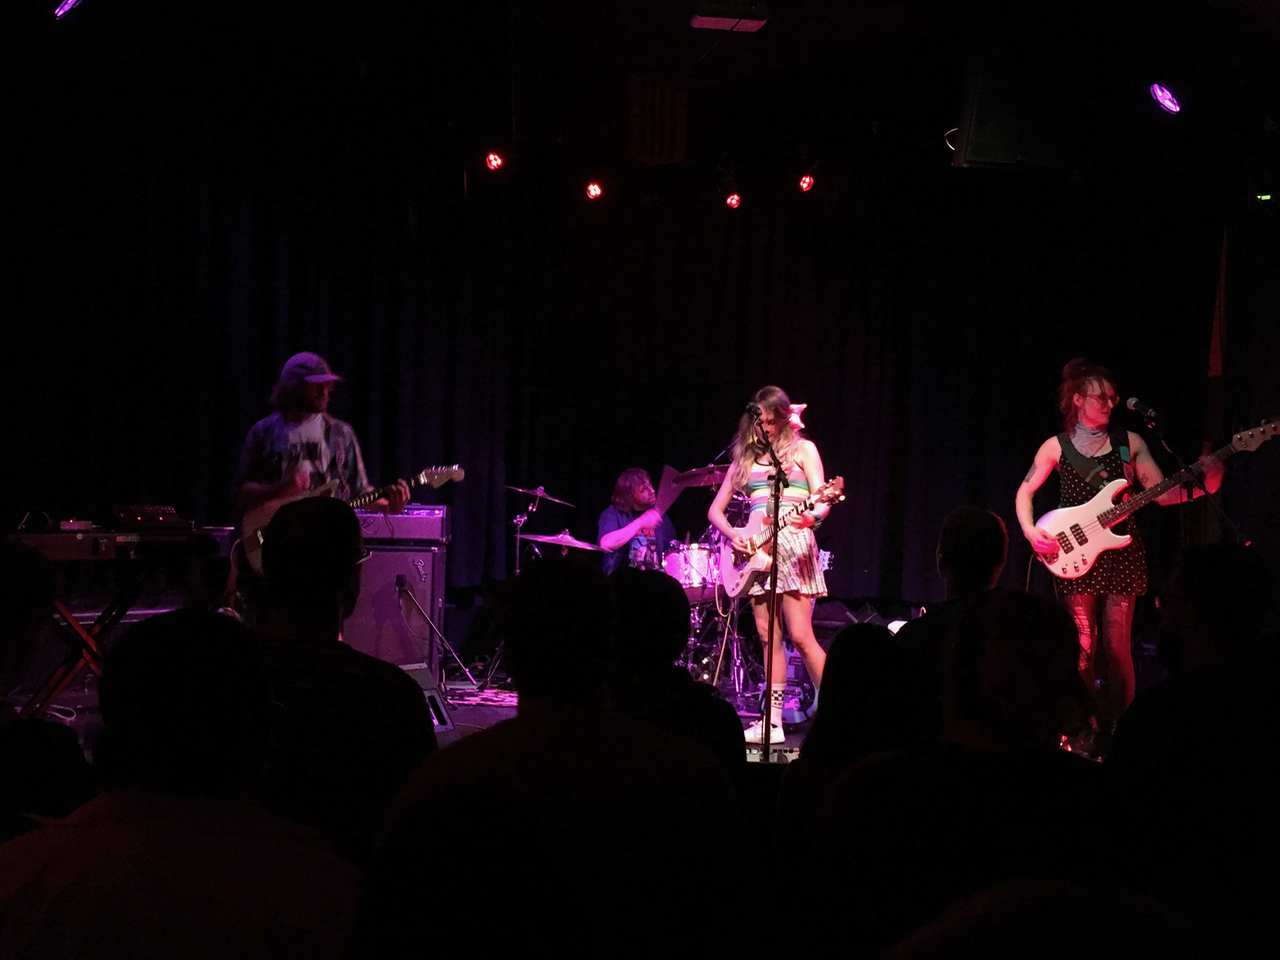 Speedy Ortiz at Starline Social Club